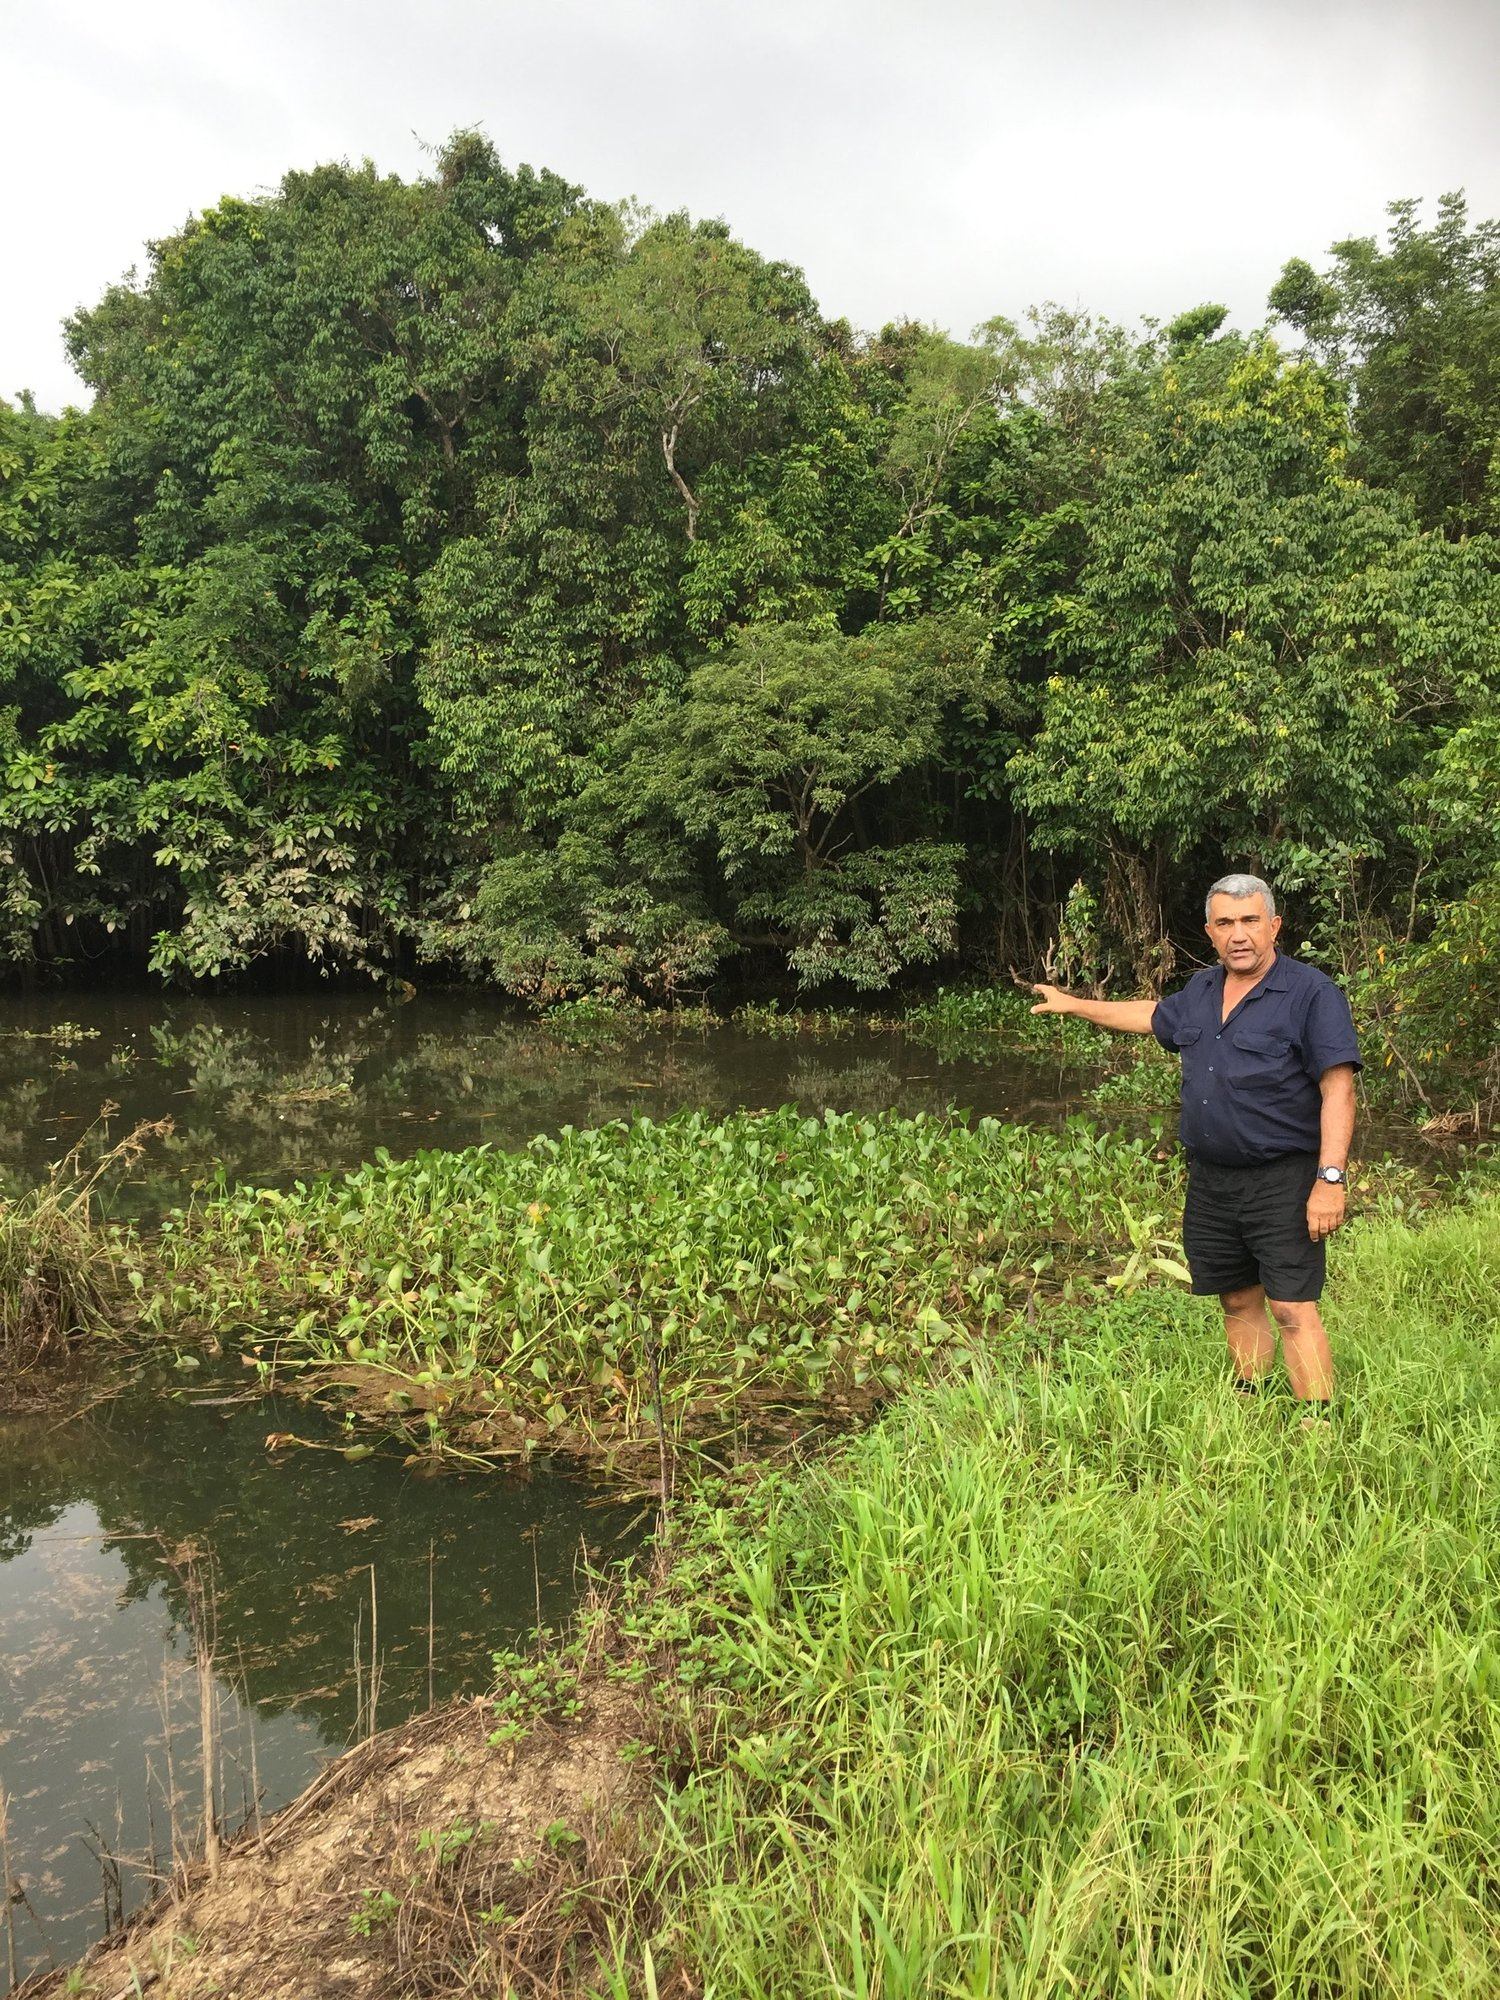 Len Parisi's lagoon system has helped to re-establish wildlife in the area and filter any excess sediment and nutrients before it enters the waterways.